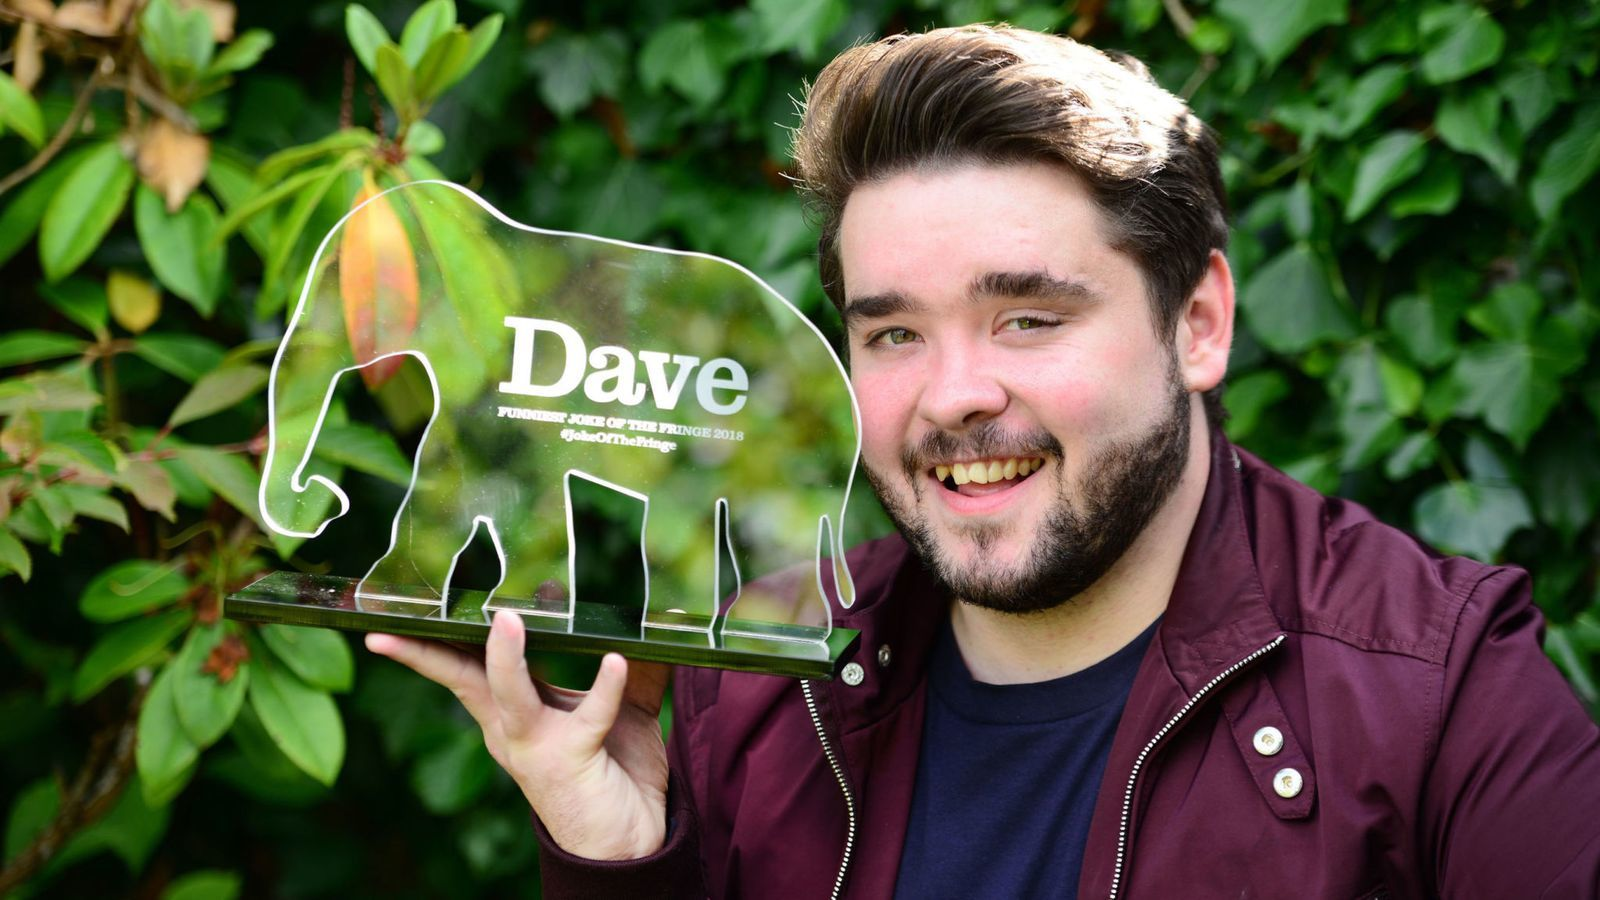 Winner Adam Rowe with the 11th Dave's Funniest Joke of the Fringe Award.